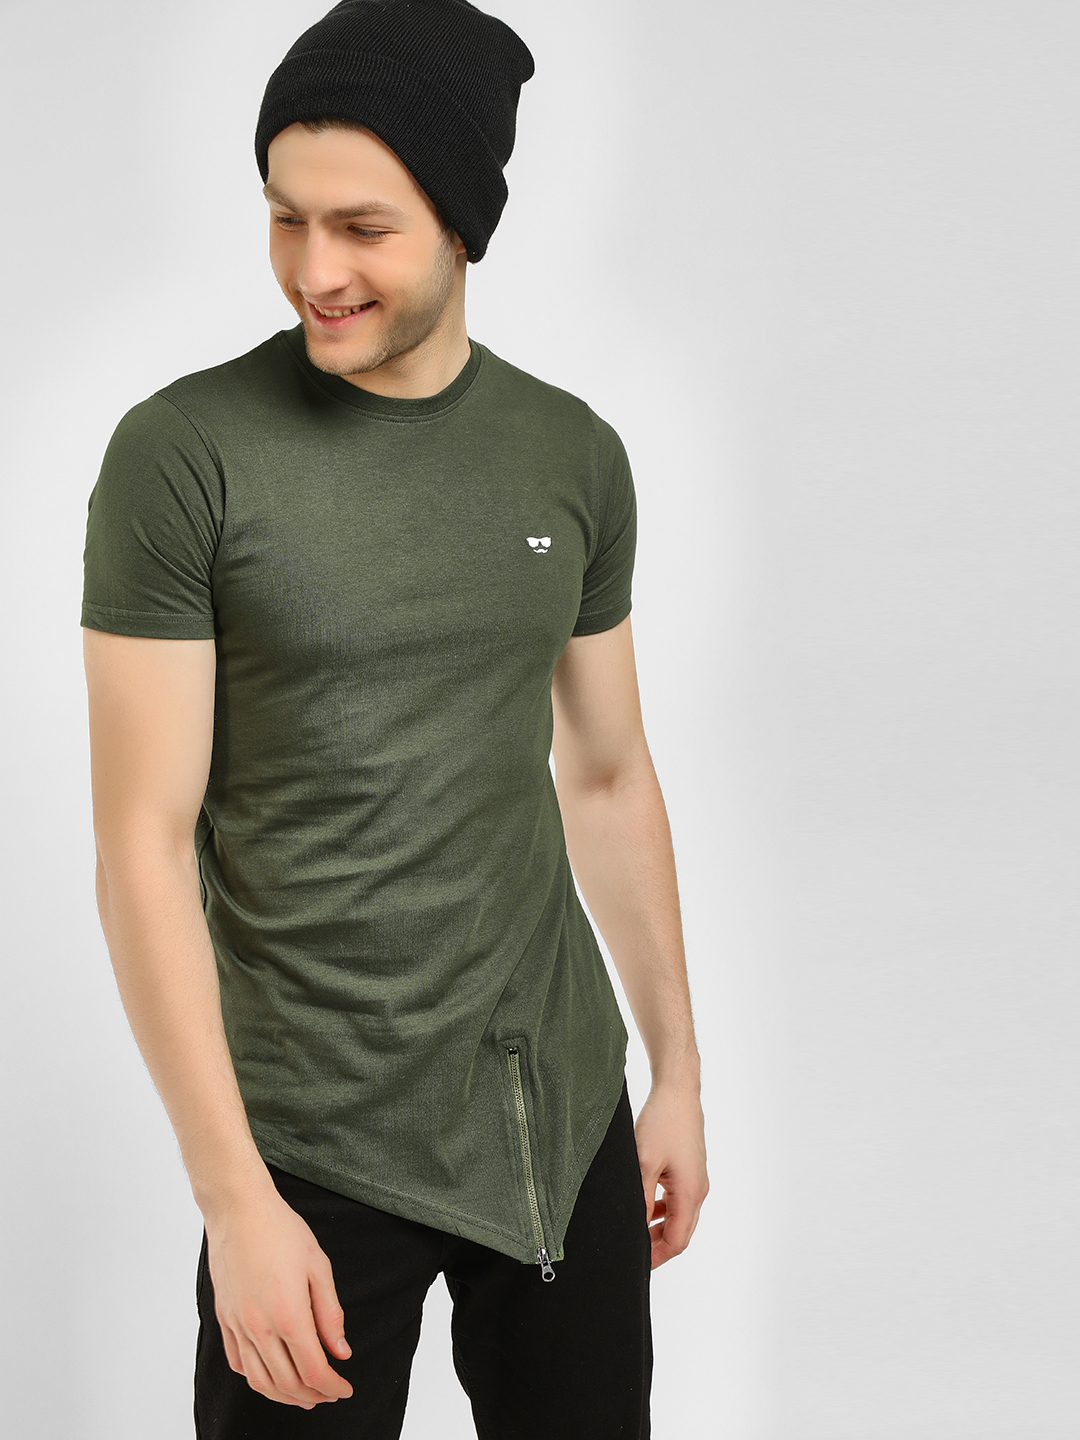 Garcon Green Asymmetric Hem Casual T-Shirt 1